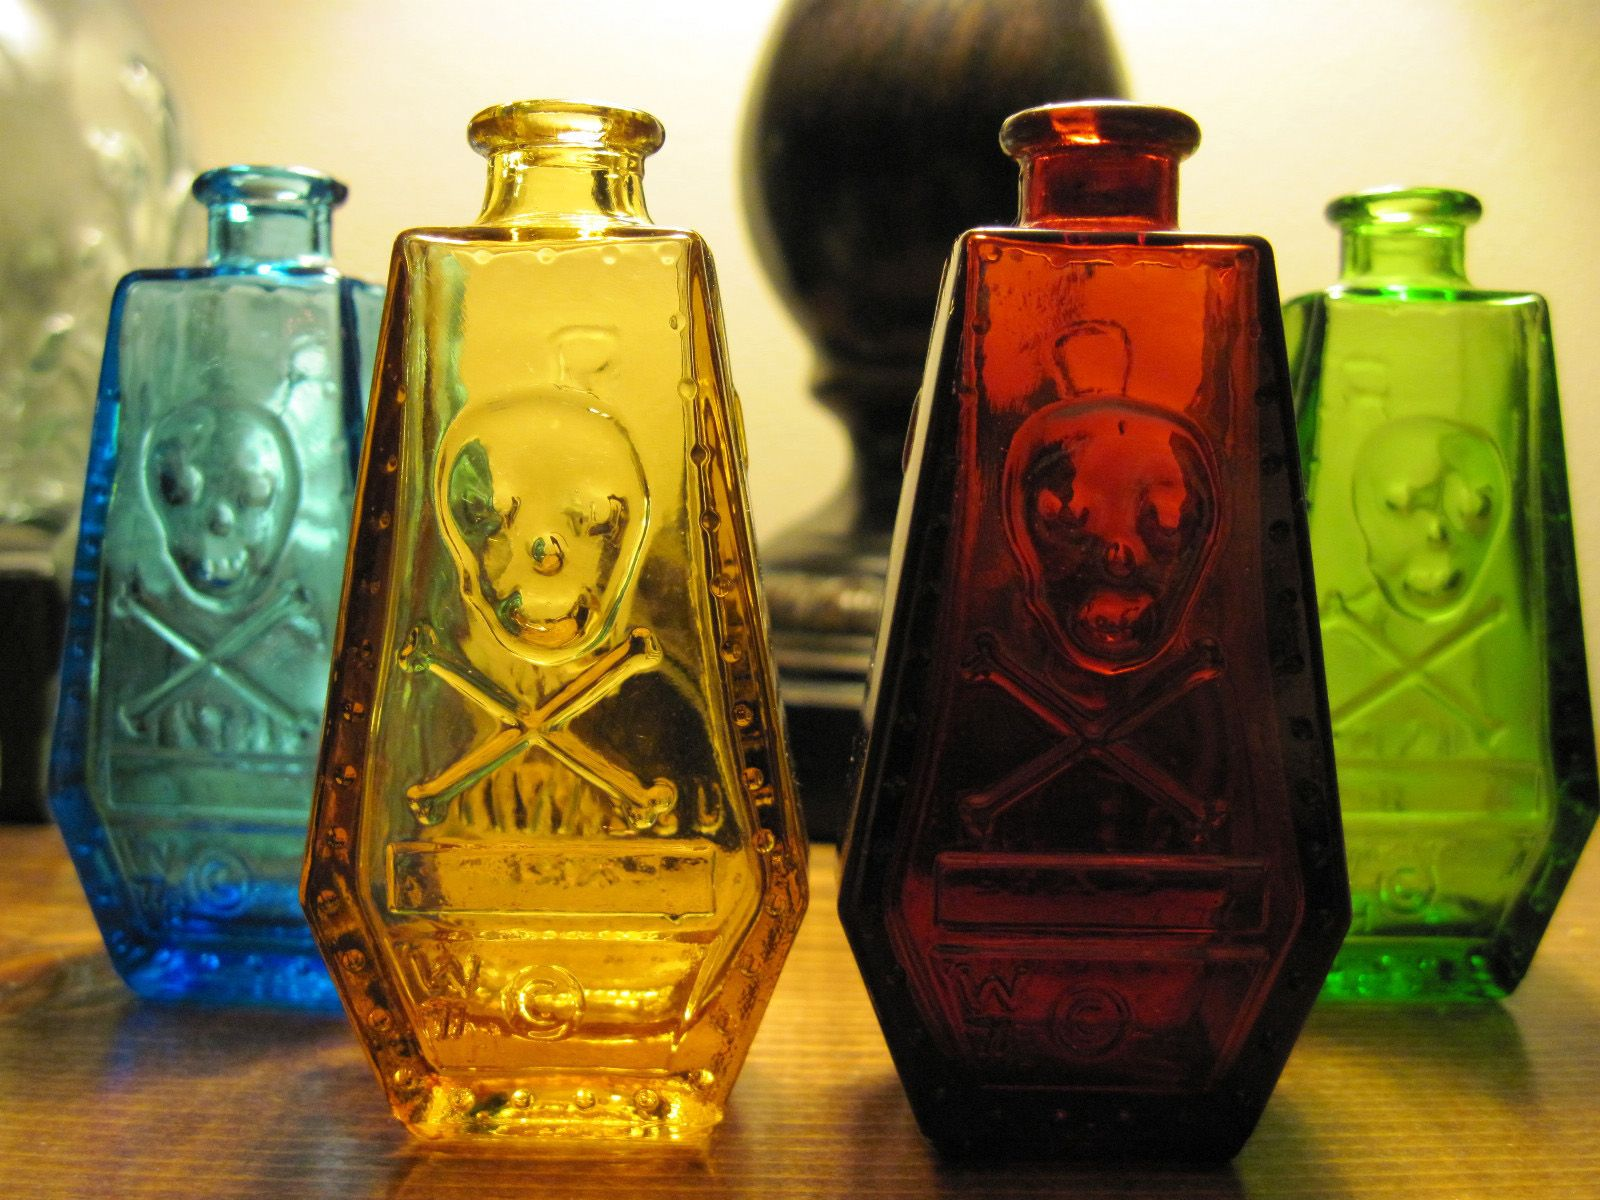 Pirate poison bottles. I'd like to drop an LED in there